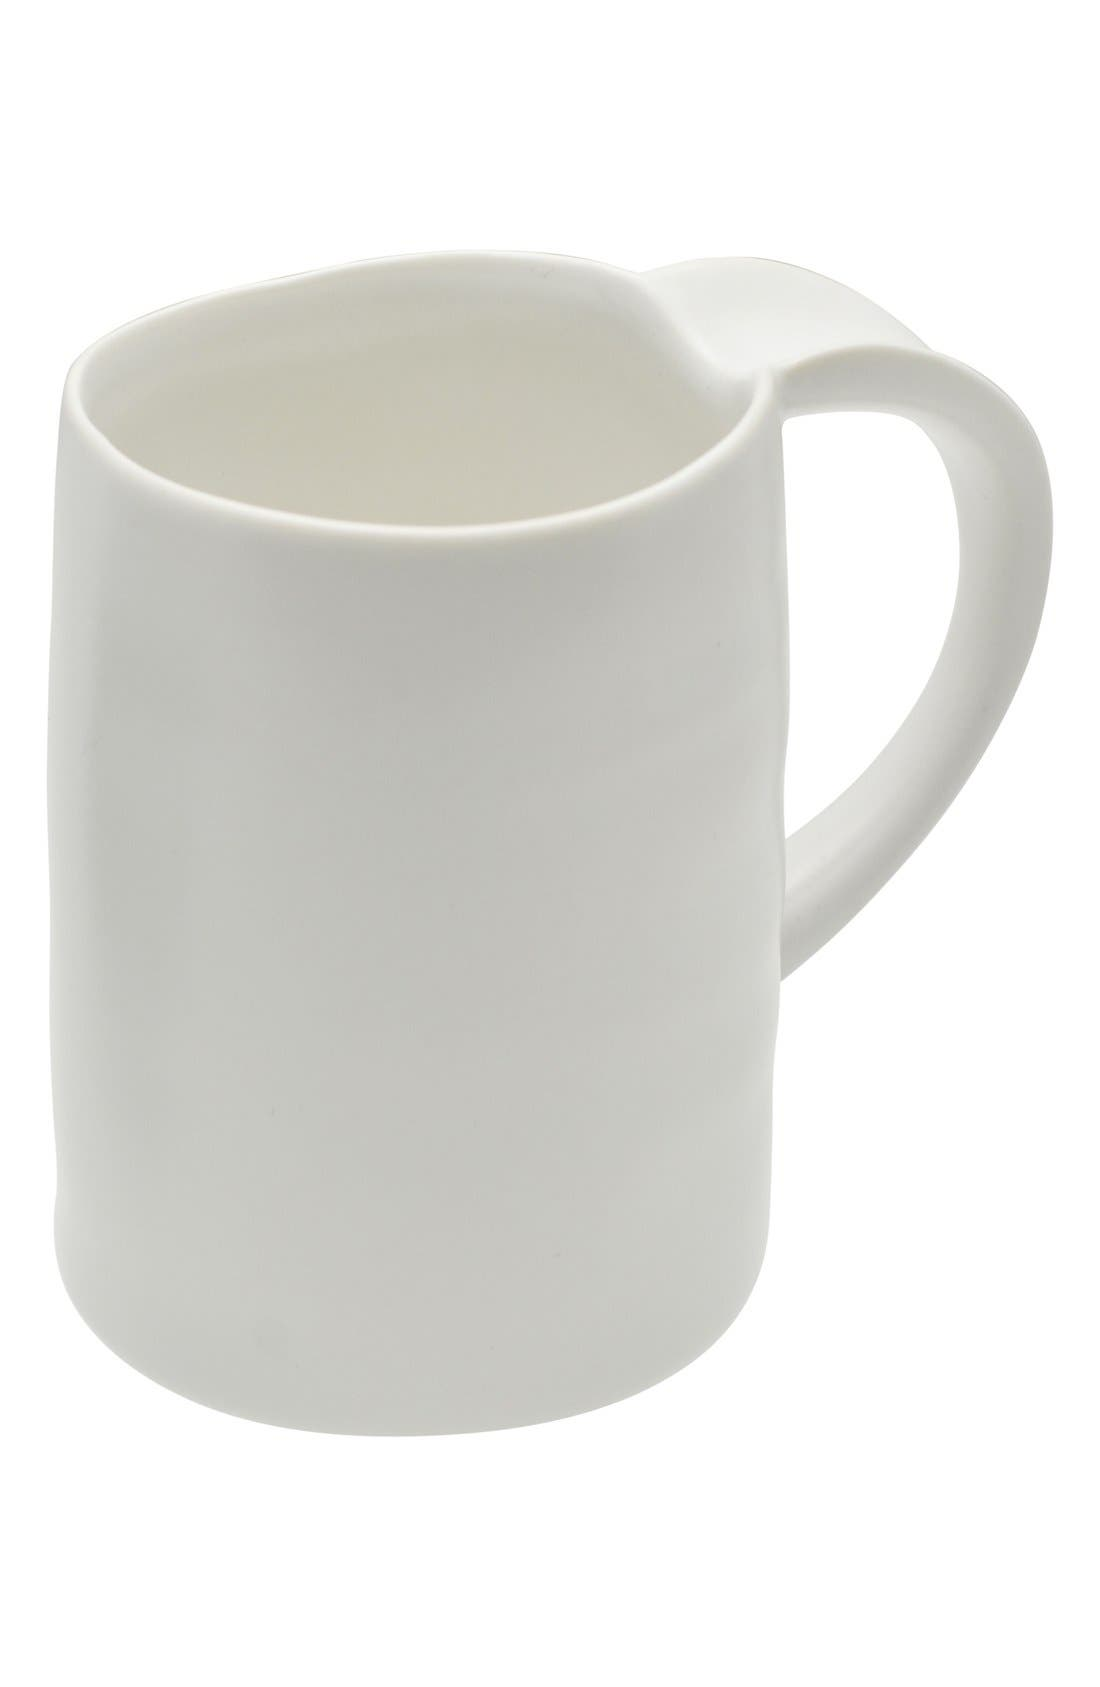 10 Strawberry Street 'Ripple' Porcelain Mugs (Set of 6)